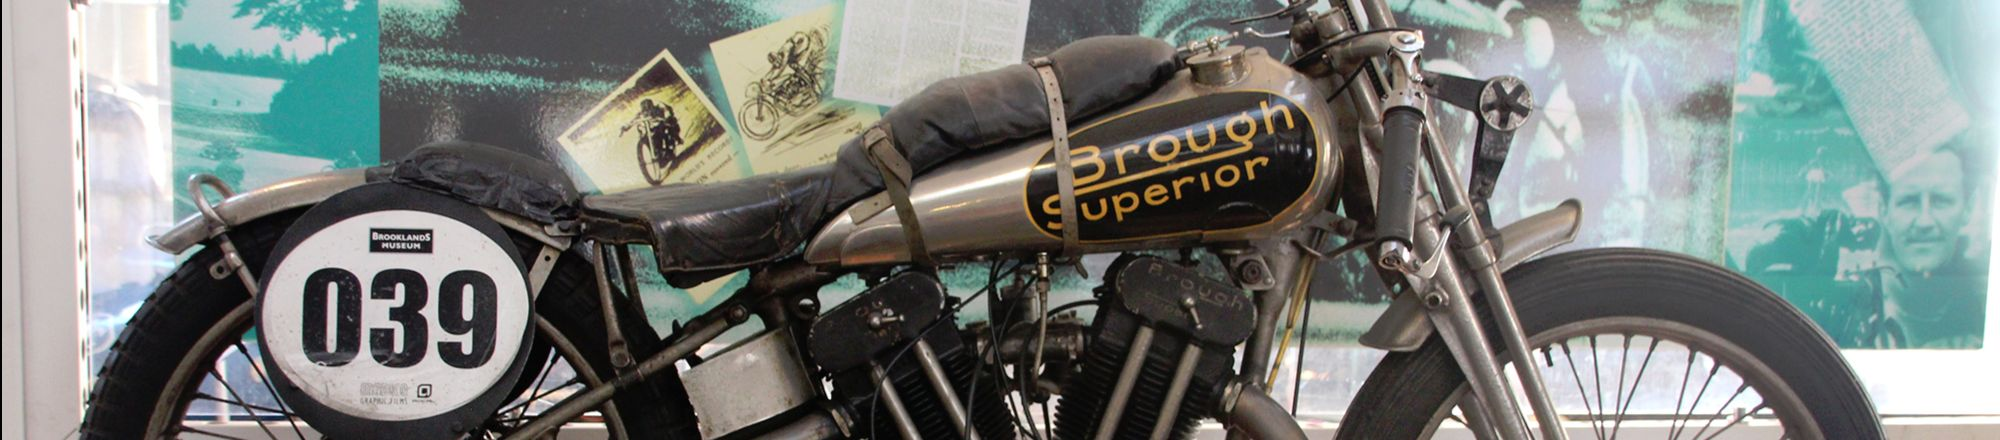 Brough Superior works scrapper motorcycle slider.jpg